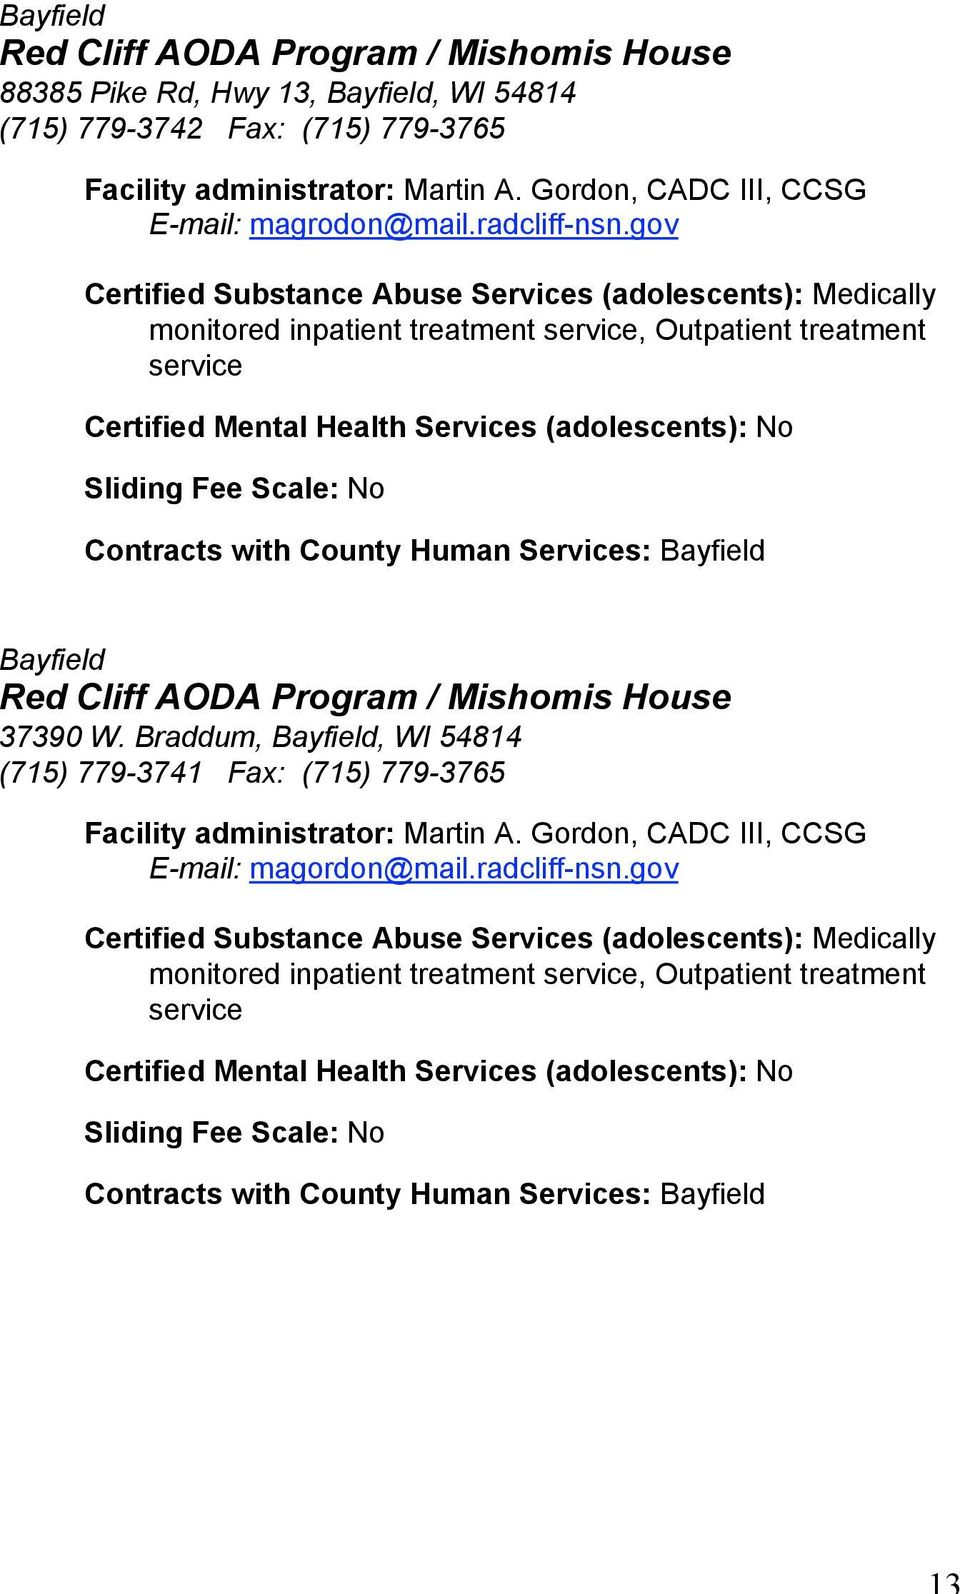 gov Certified Substance Abuse Services (adolescents): Medically monitored inpatient, Outpatient treatment service Certified Mental Health Services (adolescents): No Sliding Fee Scale: No Contracts